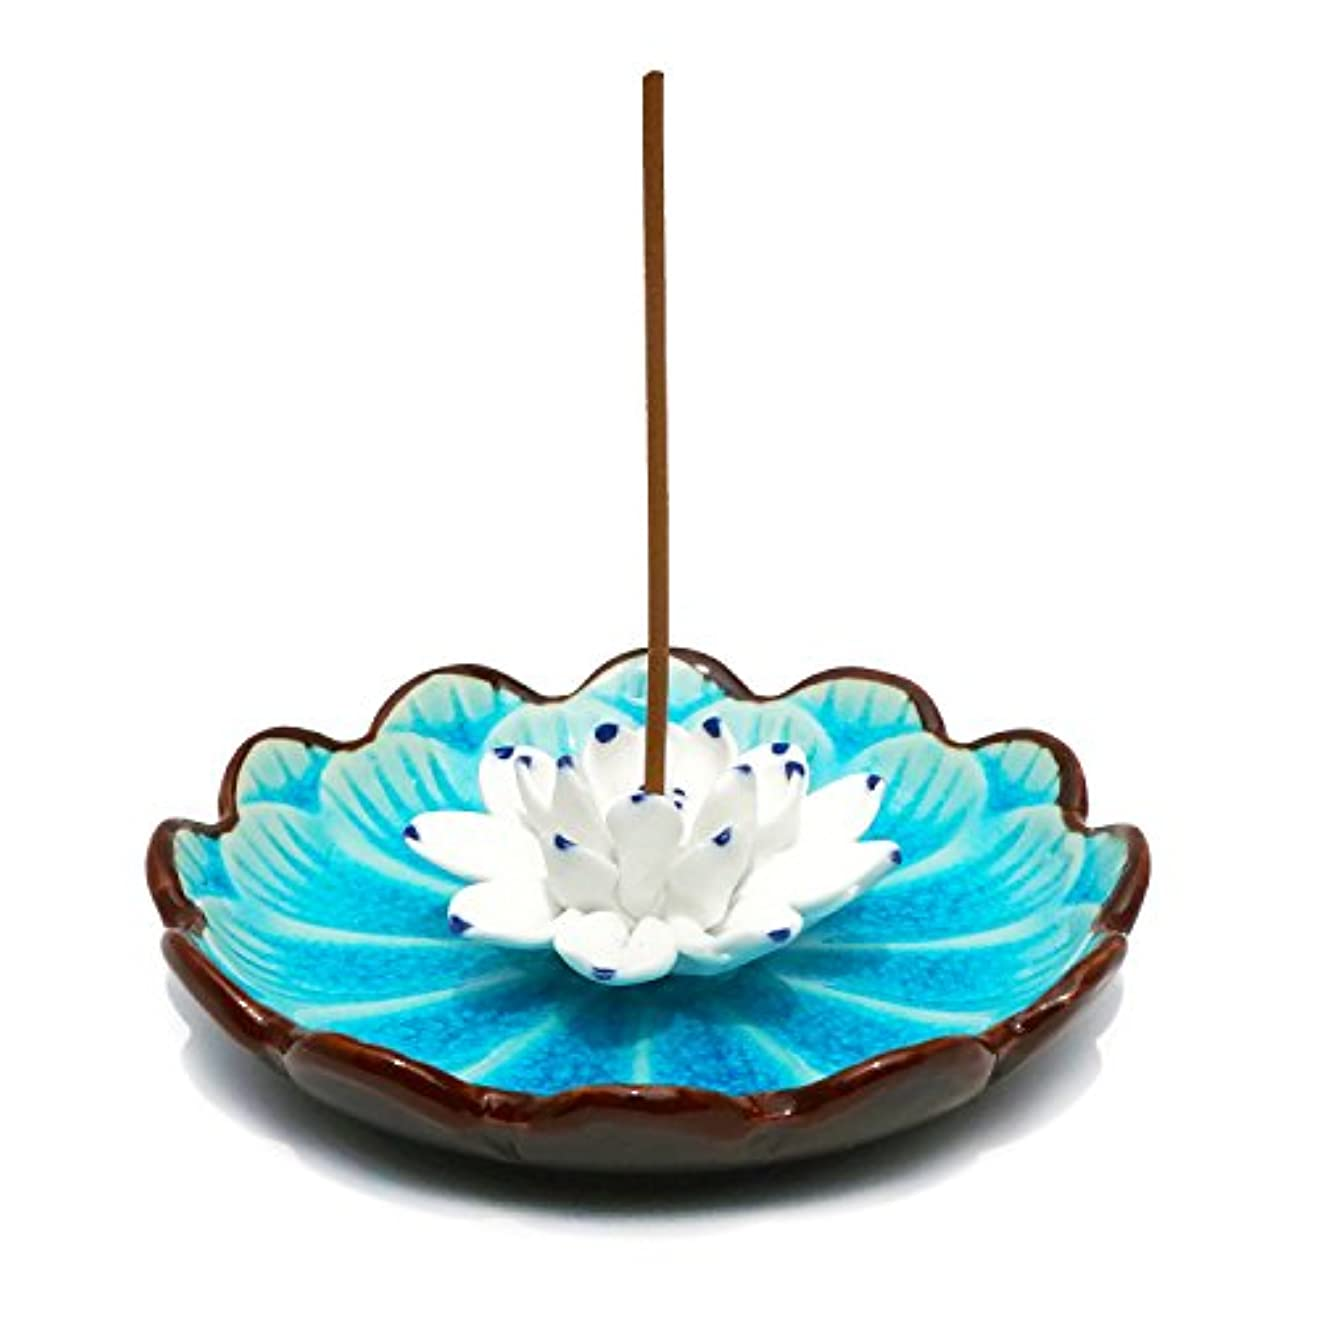 懇願するピル北へ(Light Blue) - Incense Stick Burner Holder - Porcelain Decorative Flower Incense Burner Bowl - Ceramic Incense...